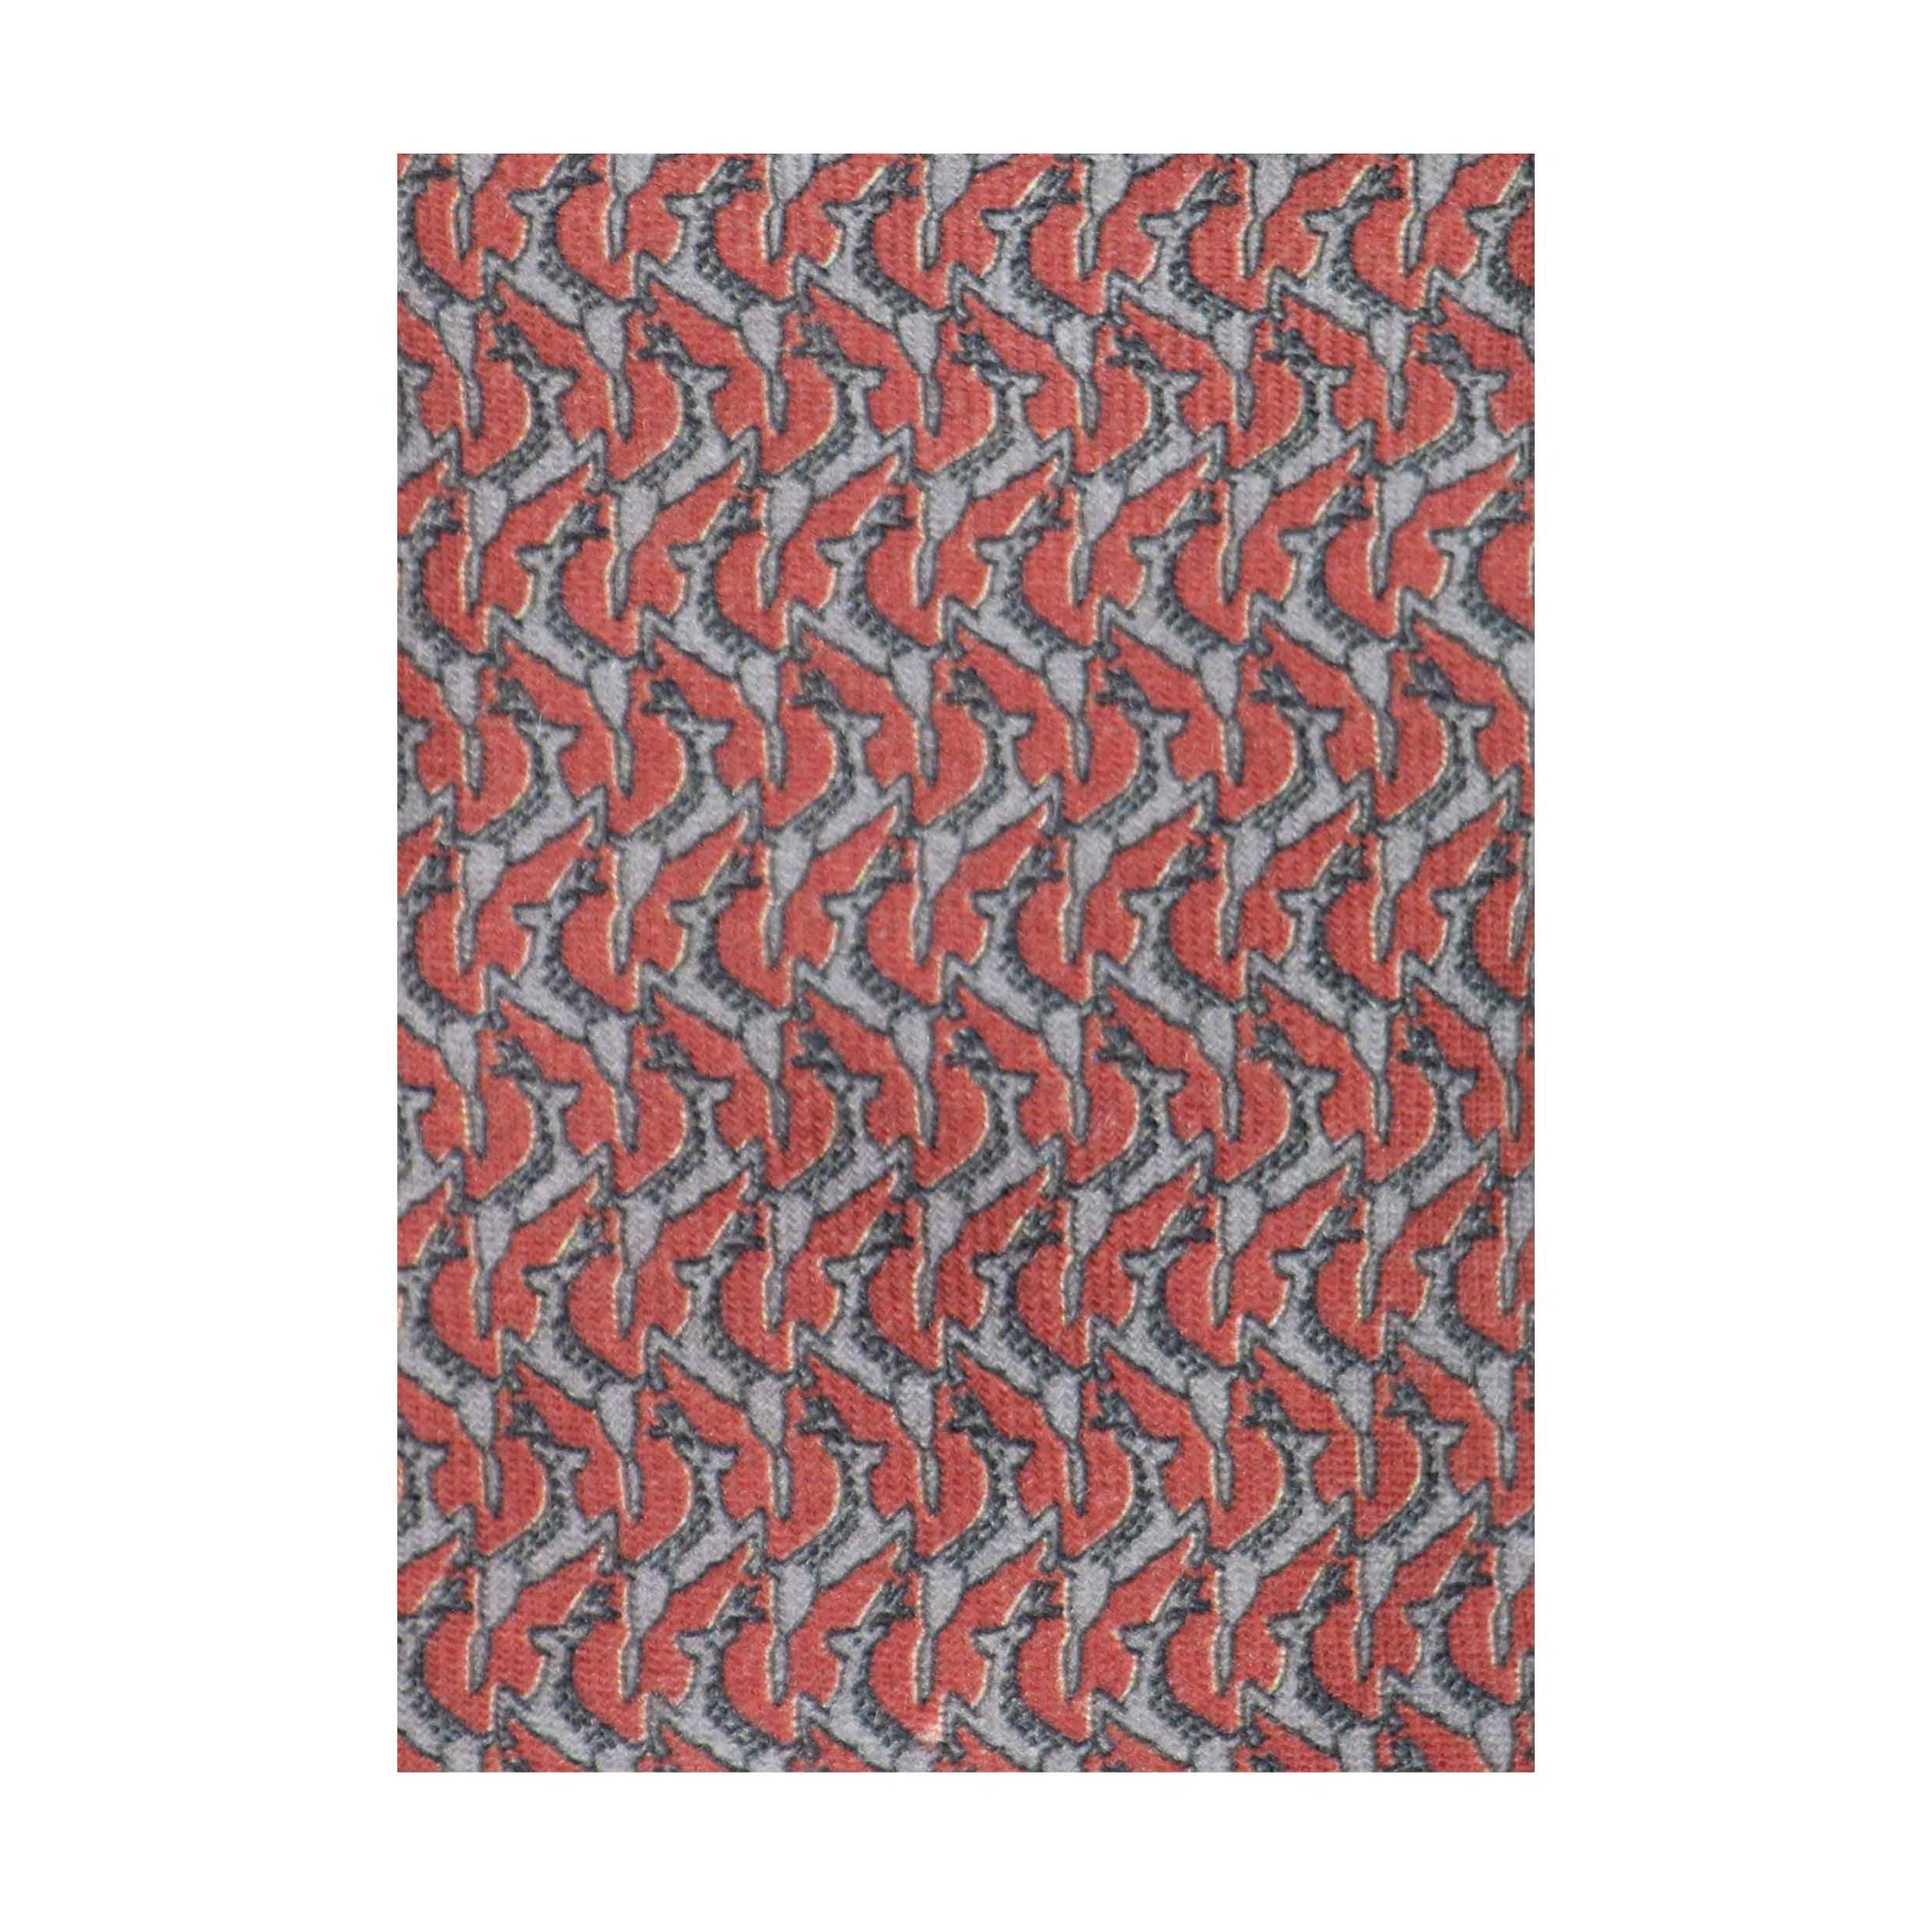 Cravate 174Fg Laine imprimee Bestiaire Mirage Daims rouge - gris